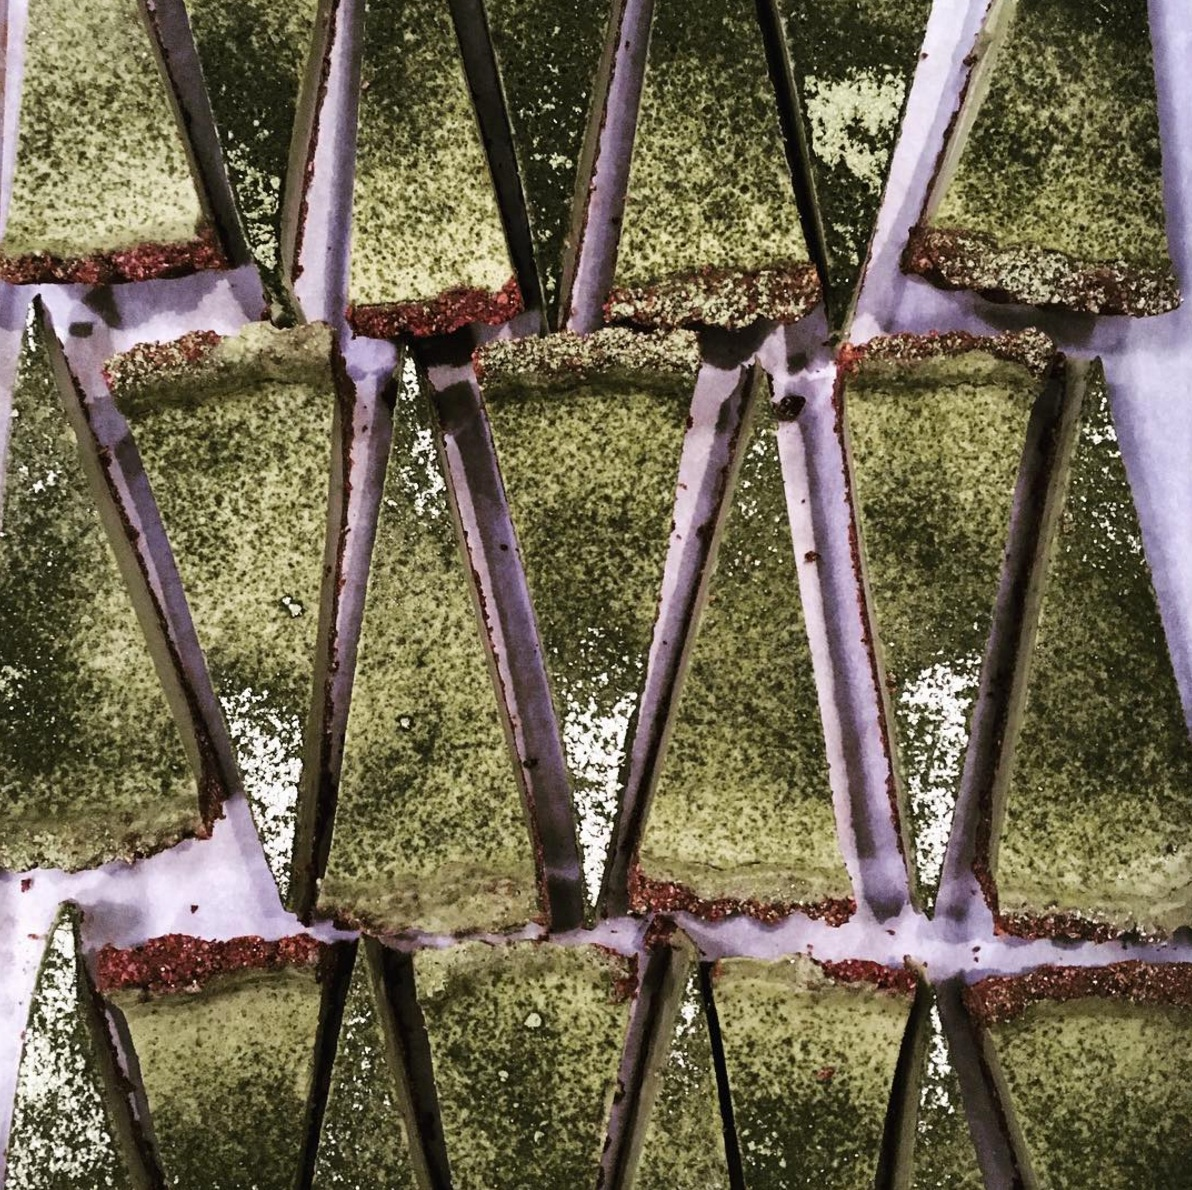 MATCHA COCONUT CHOCOLATE TART  -  Inspired by Amy Chaplin